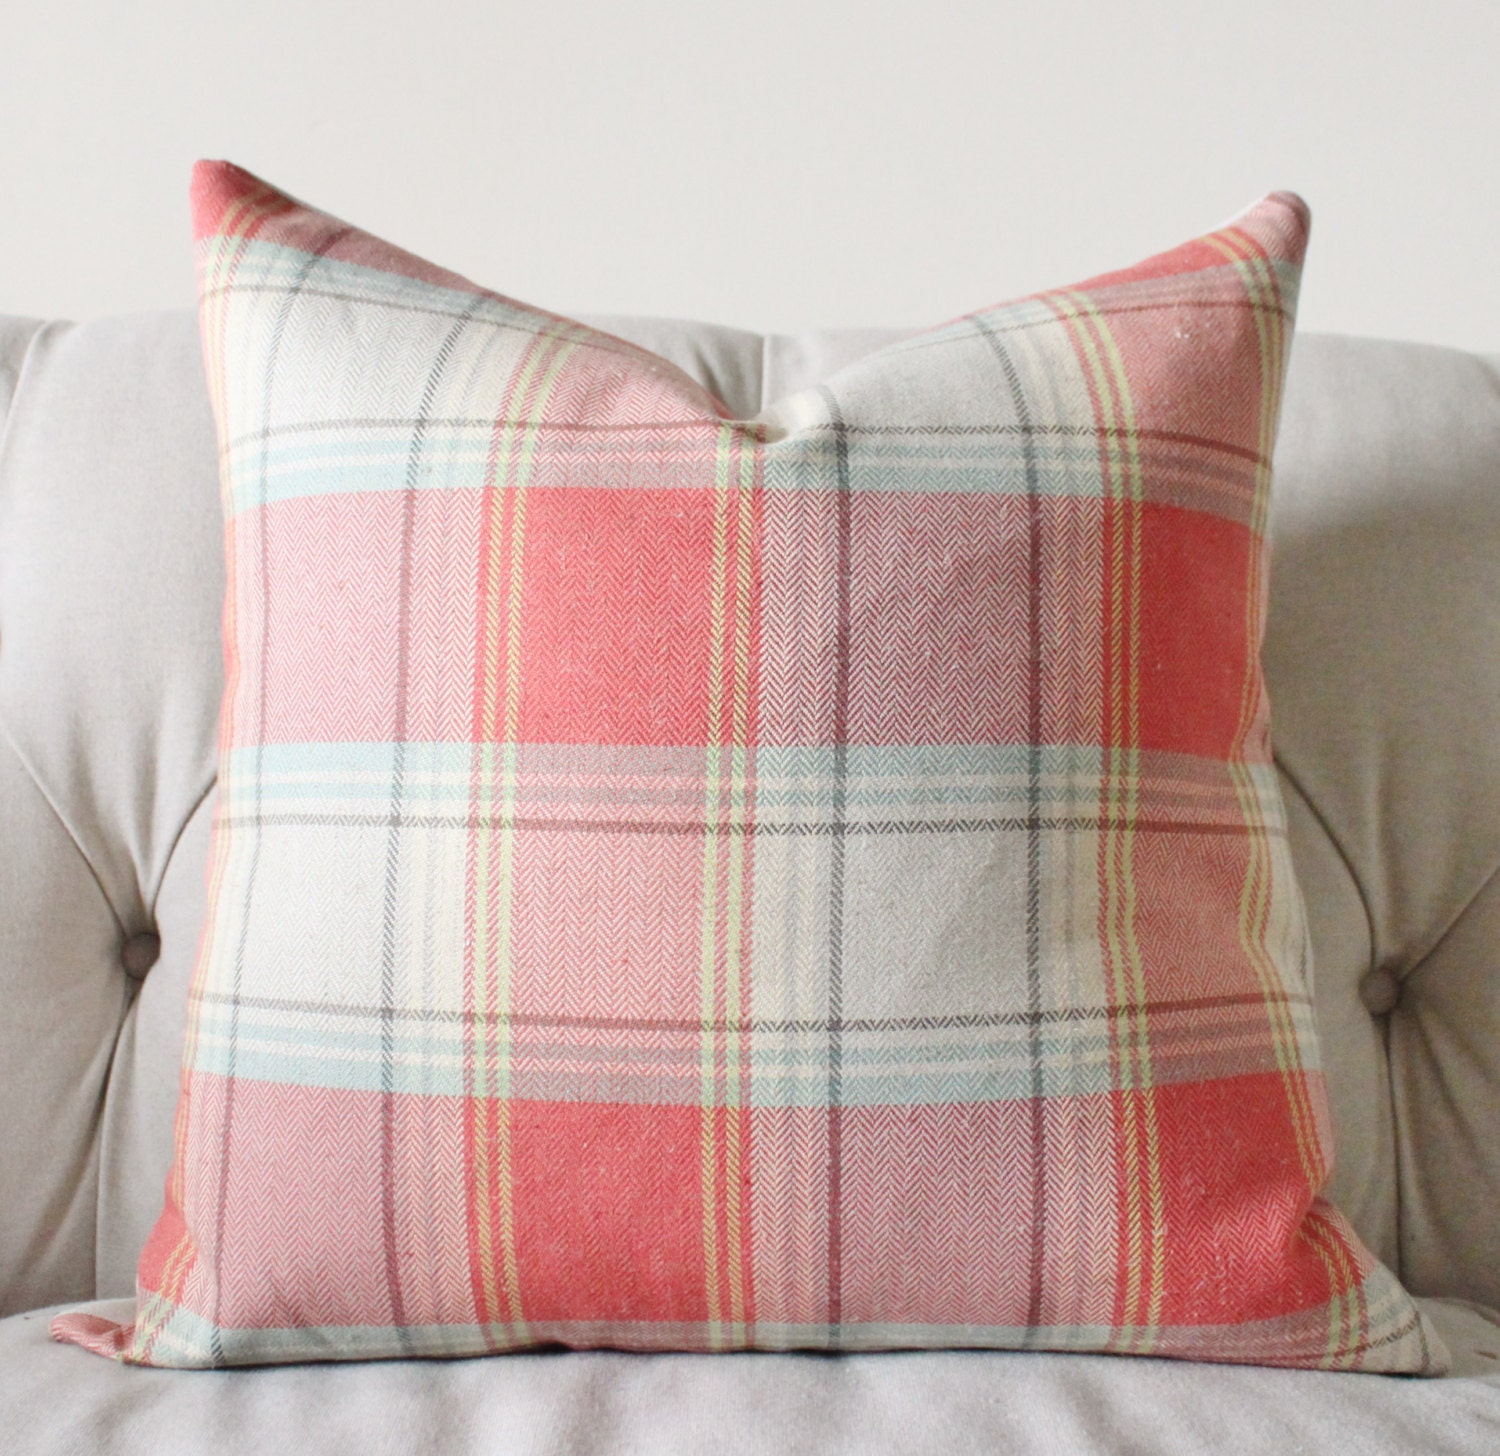 Decorative Plaid Pillows : Aqua Orange Coral Pillow Salmon Plaid Pillow Cover Summer